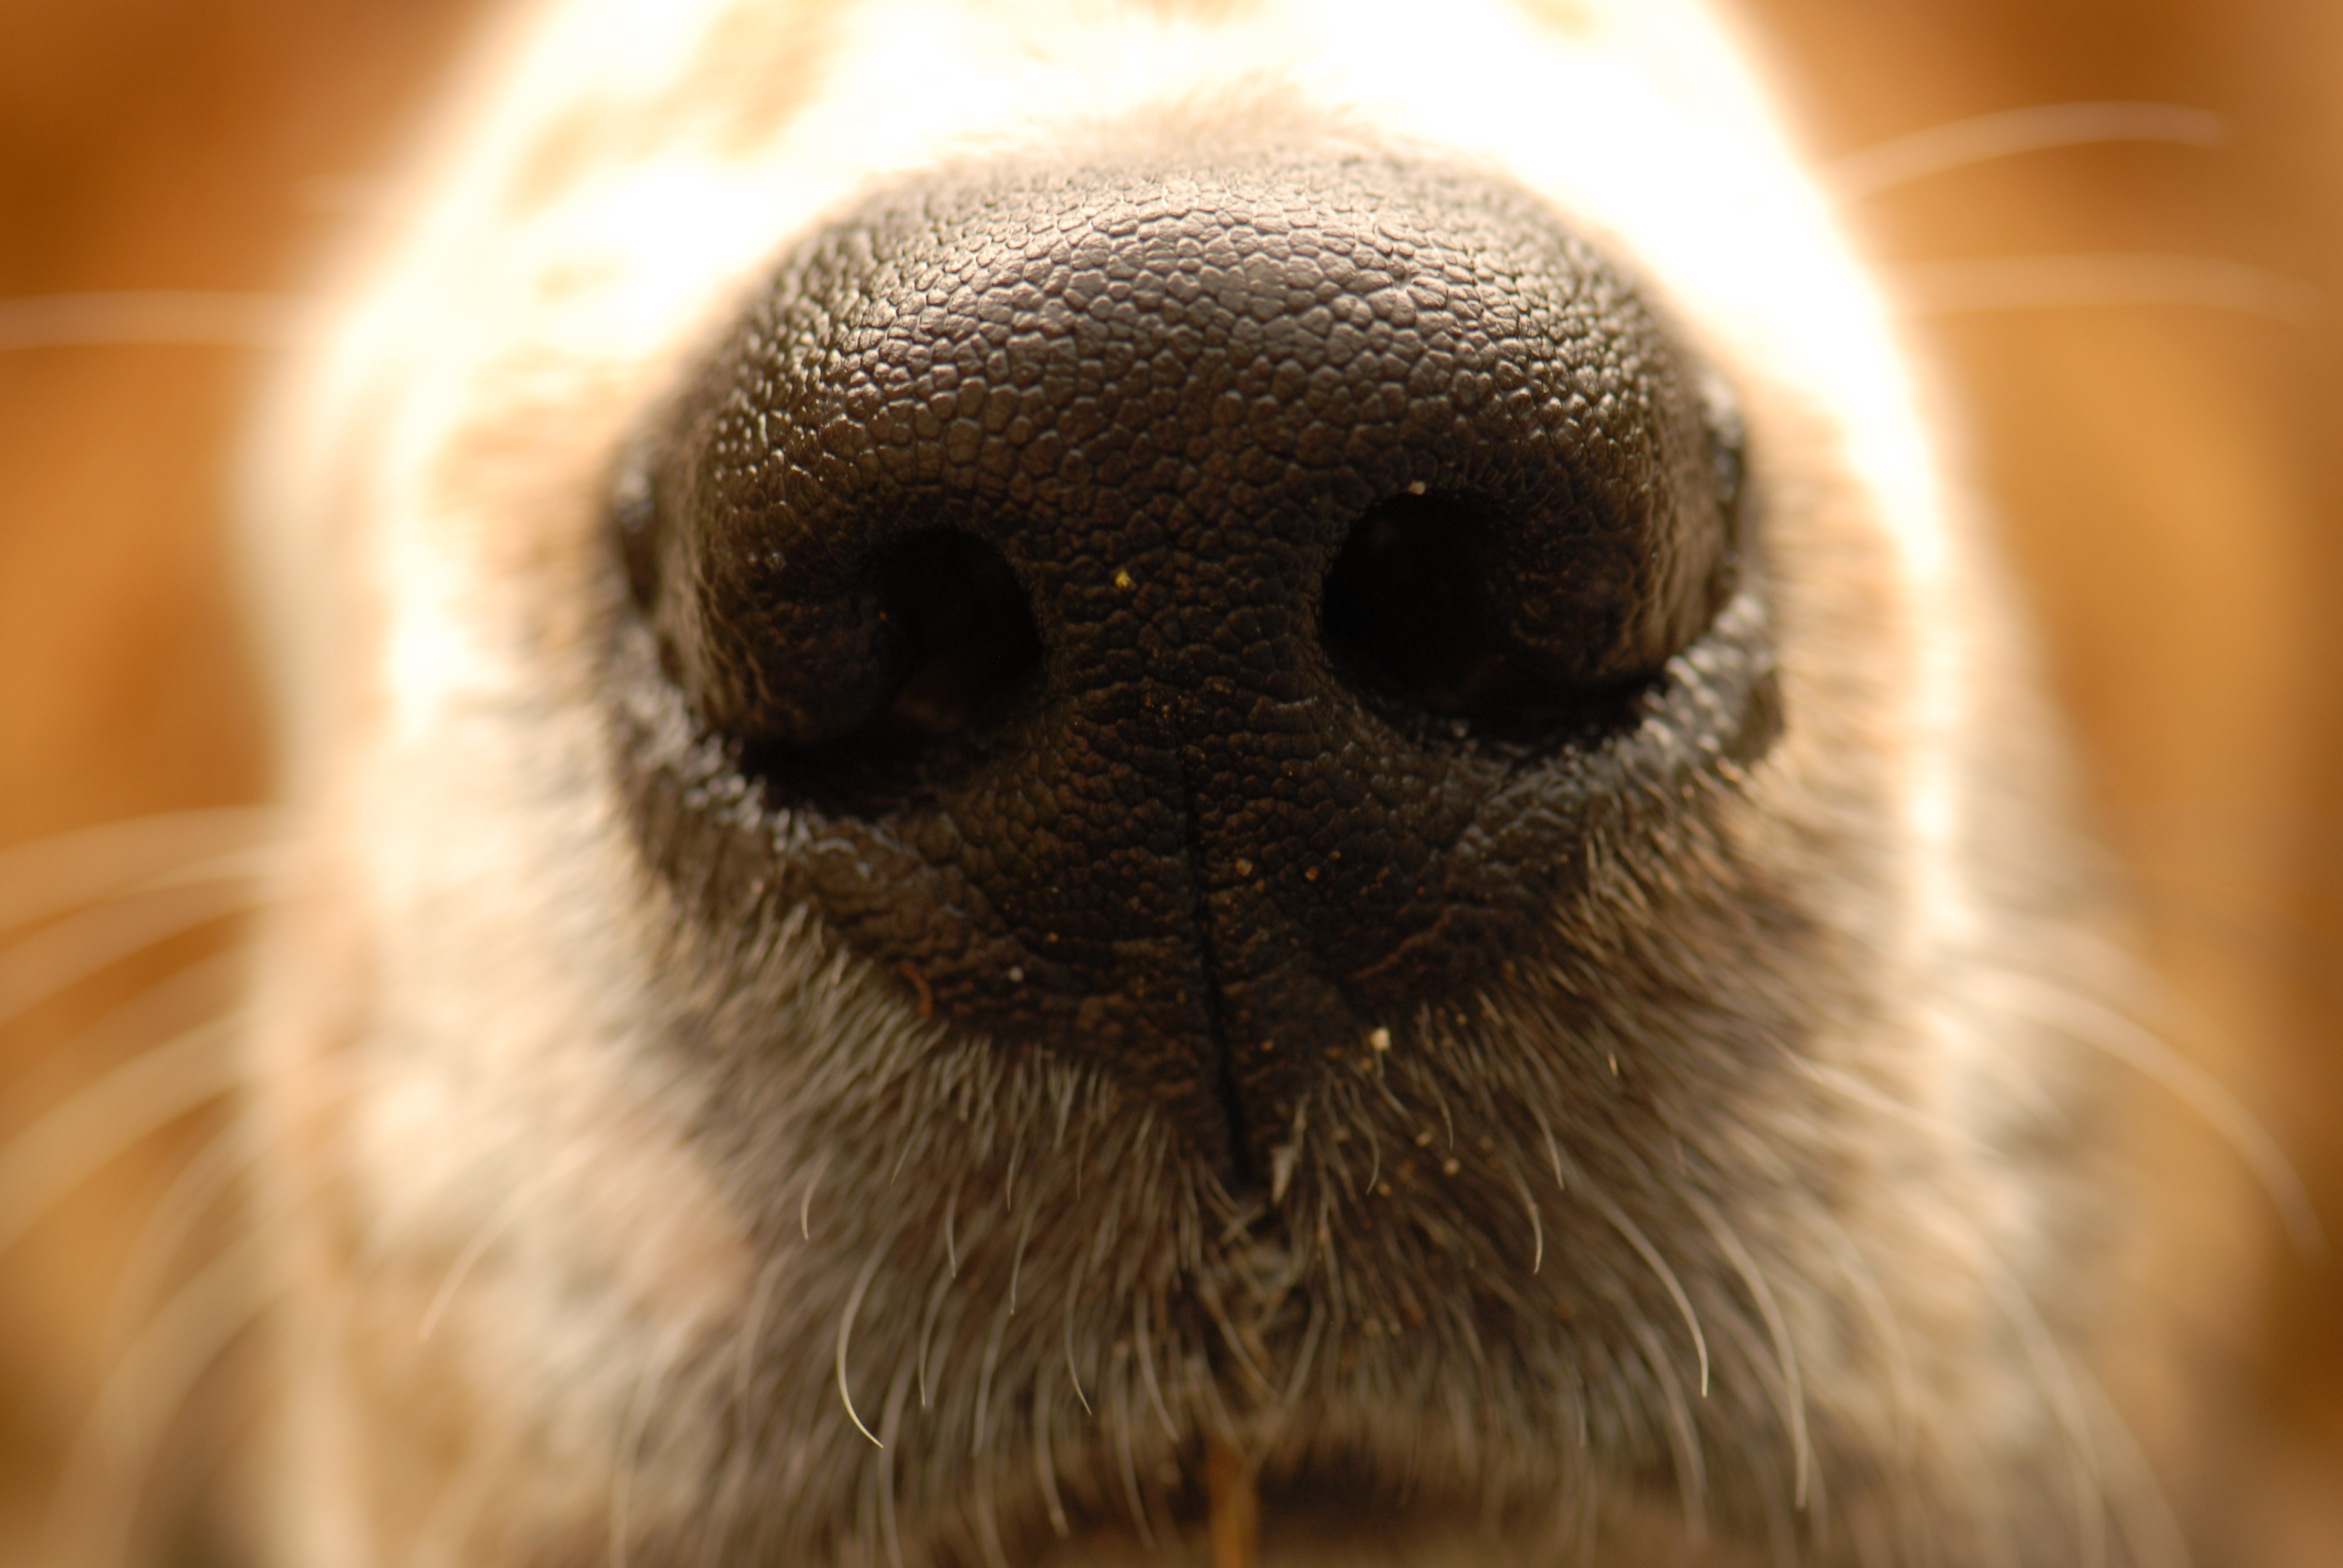 how to tell if your house smells like dog